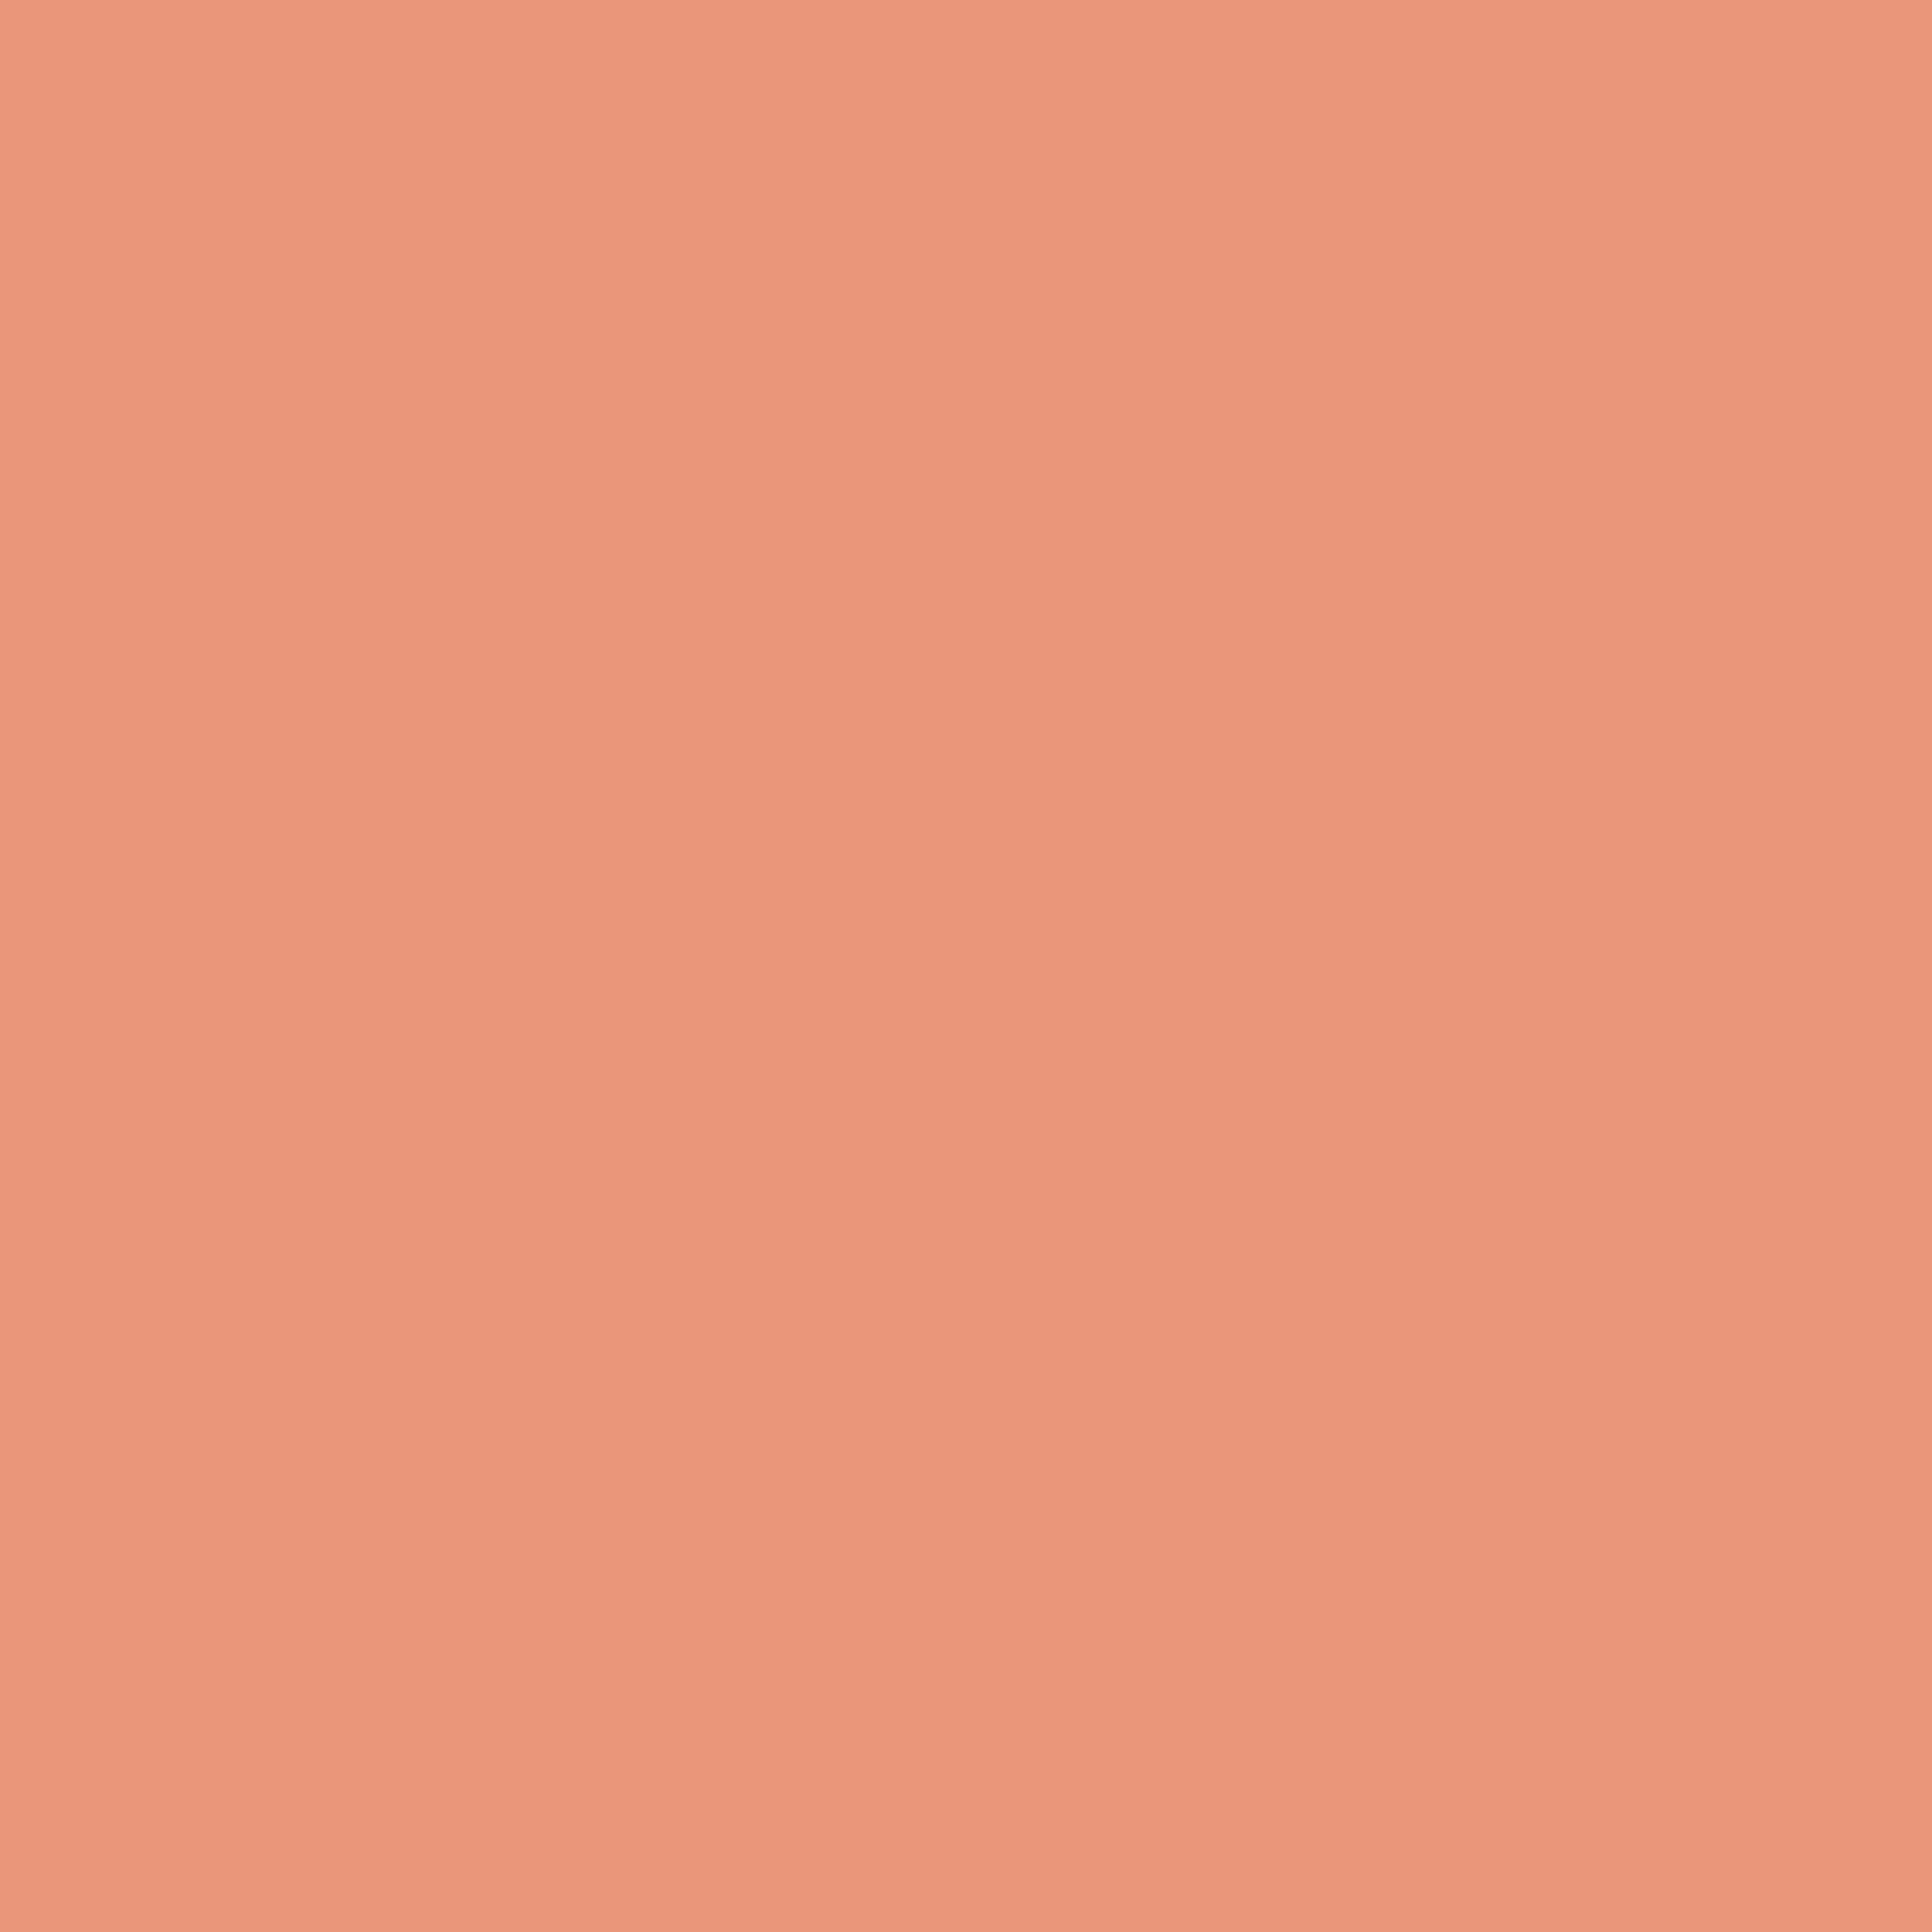 2732x2732 Dark Salmon Solid Color Background